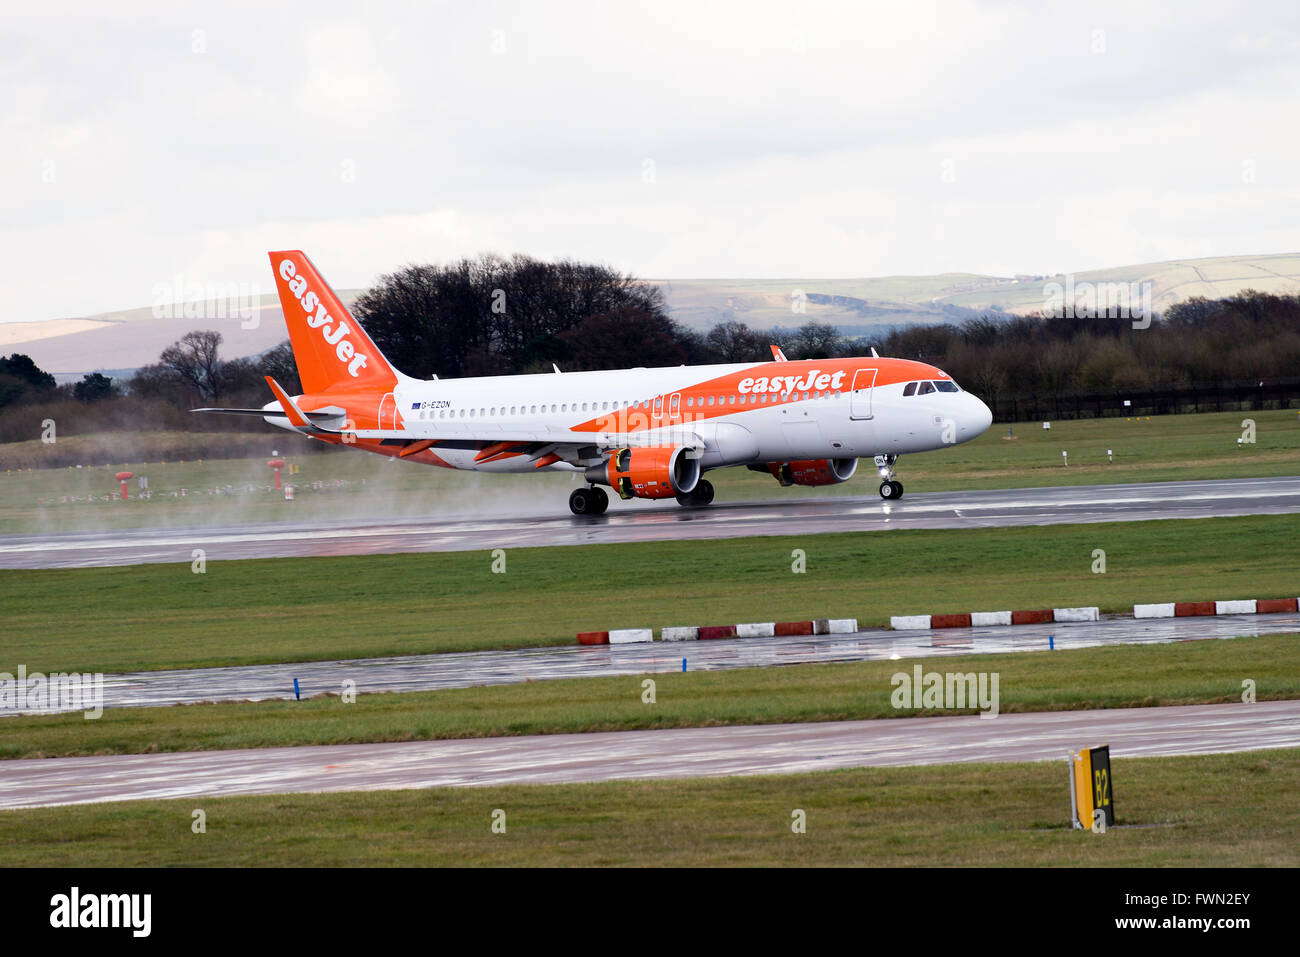 easyJet Airbus A320-214 Airliner G-EZON Landing on Arrival at Manchester International Airport England United Kingdom Stock Photo